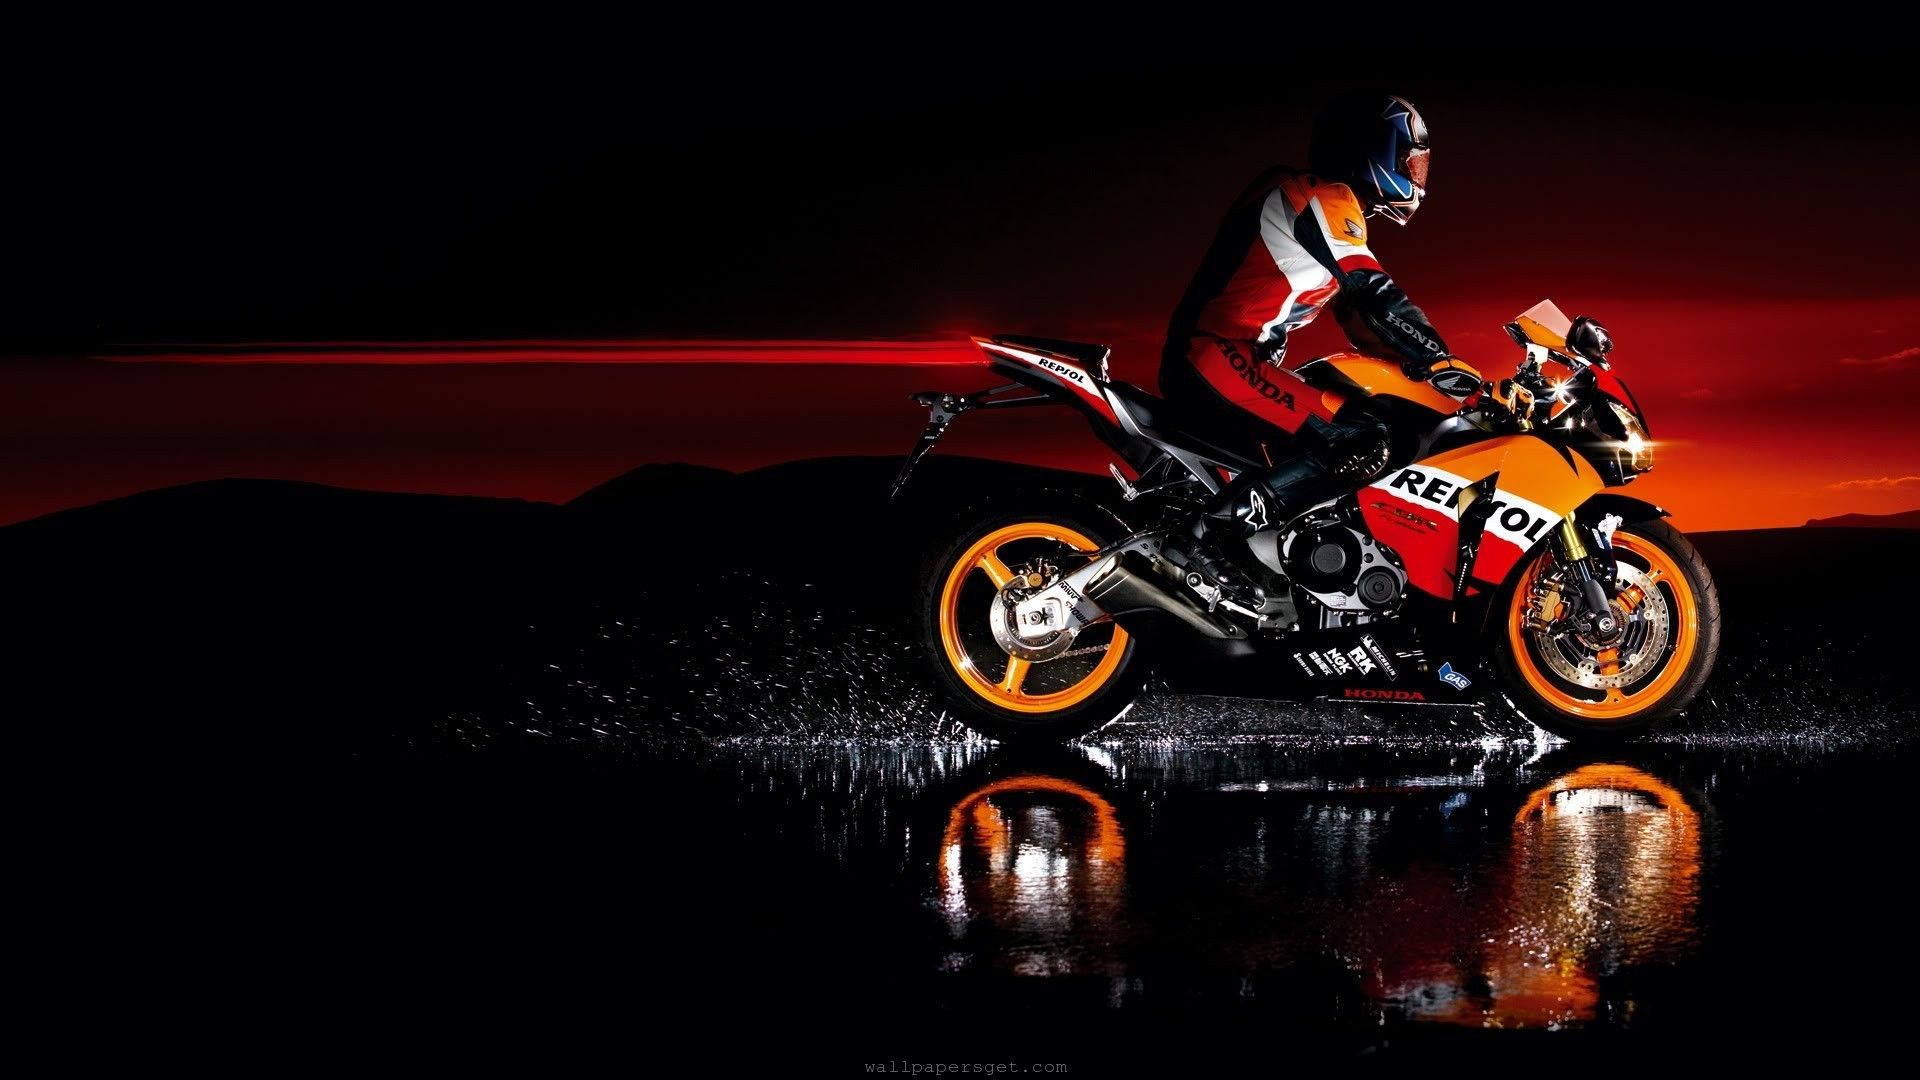 1920x1080 Honda Motorcycle Wallpapers 6763 Hd Wallpapers in Bikes - Imagesci.com